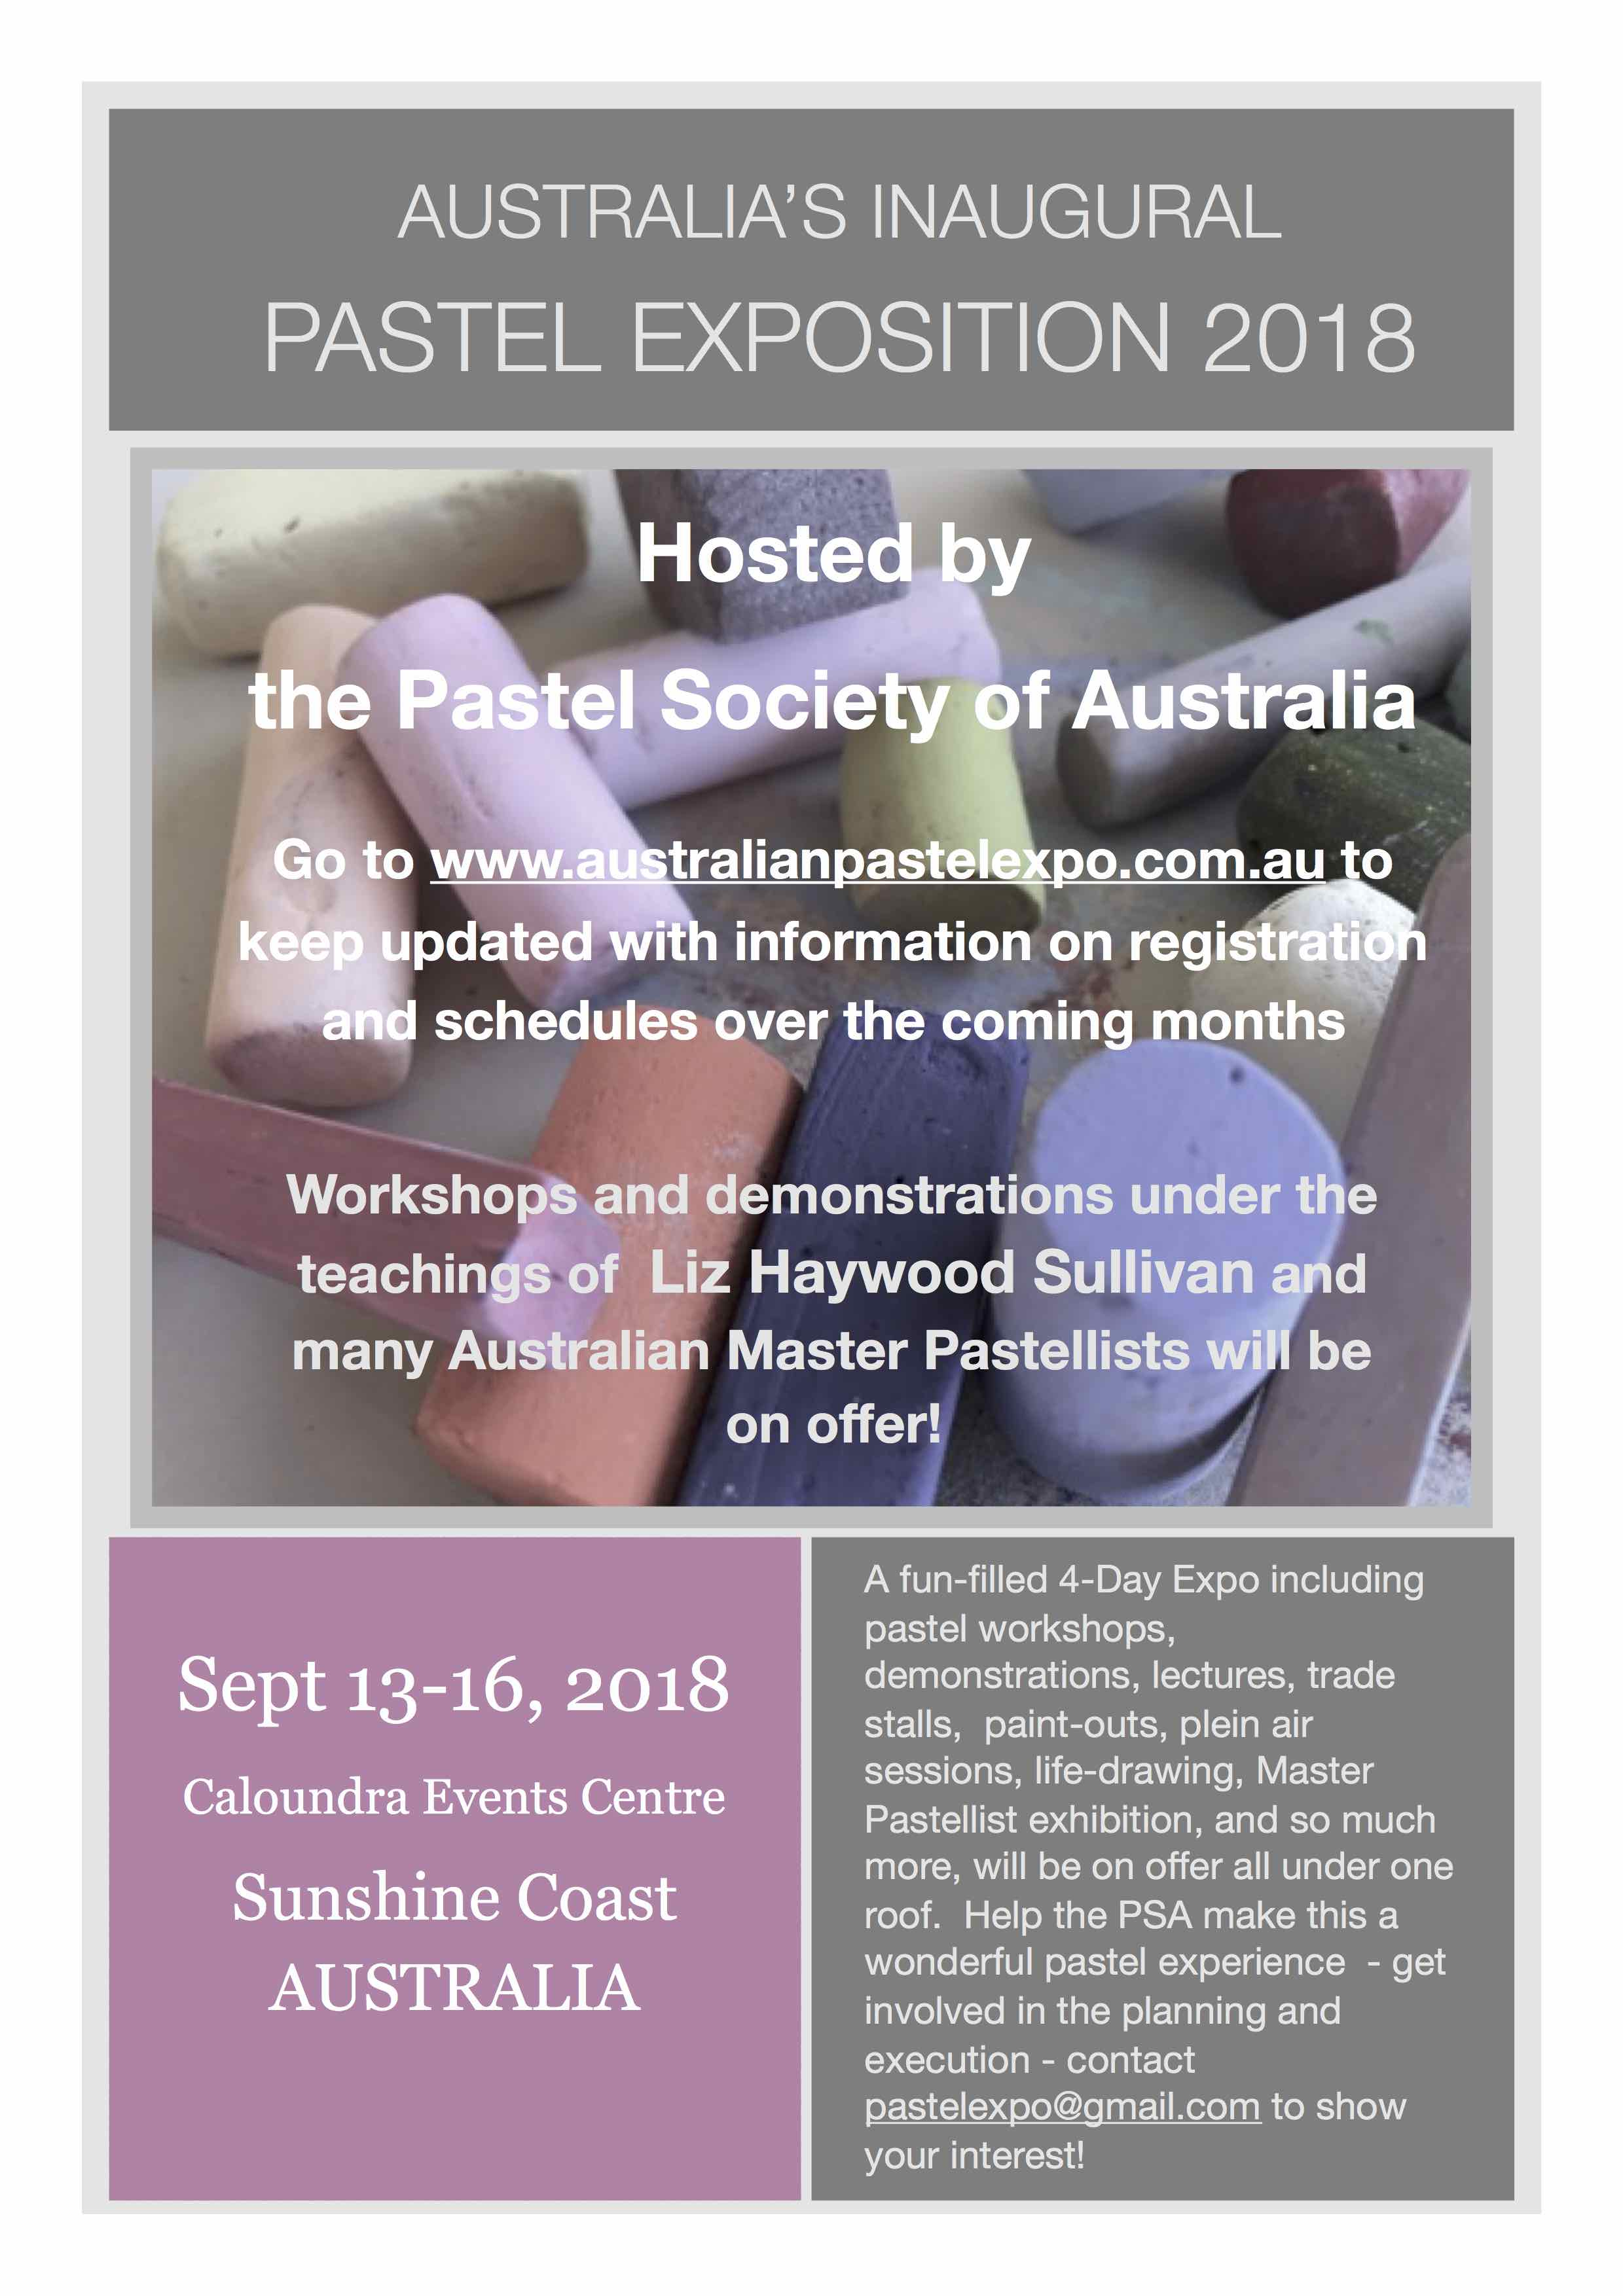 Australia's Inaugural Pastel Exposition 2018 | Pastel Society of Victoria, A